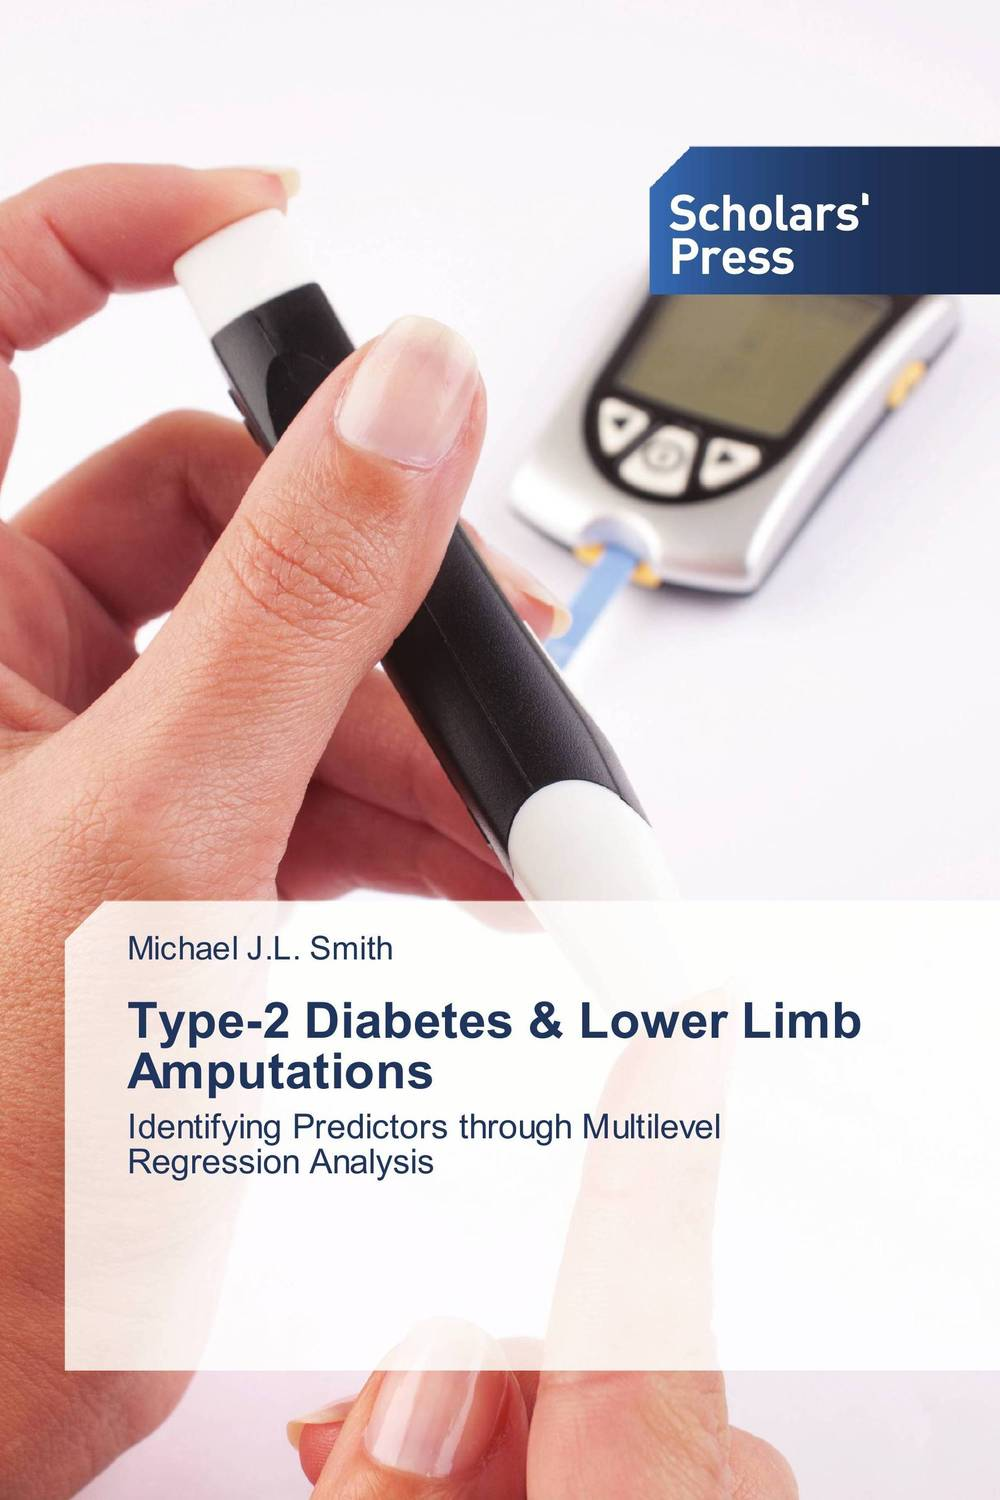 Type-2 Diabetes & Lower Limb Amputations risk regulation and administrative constitutionalism